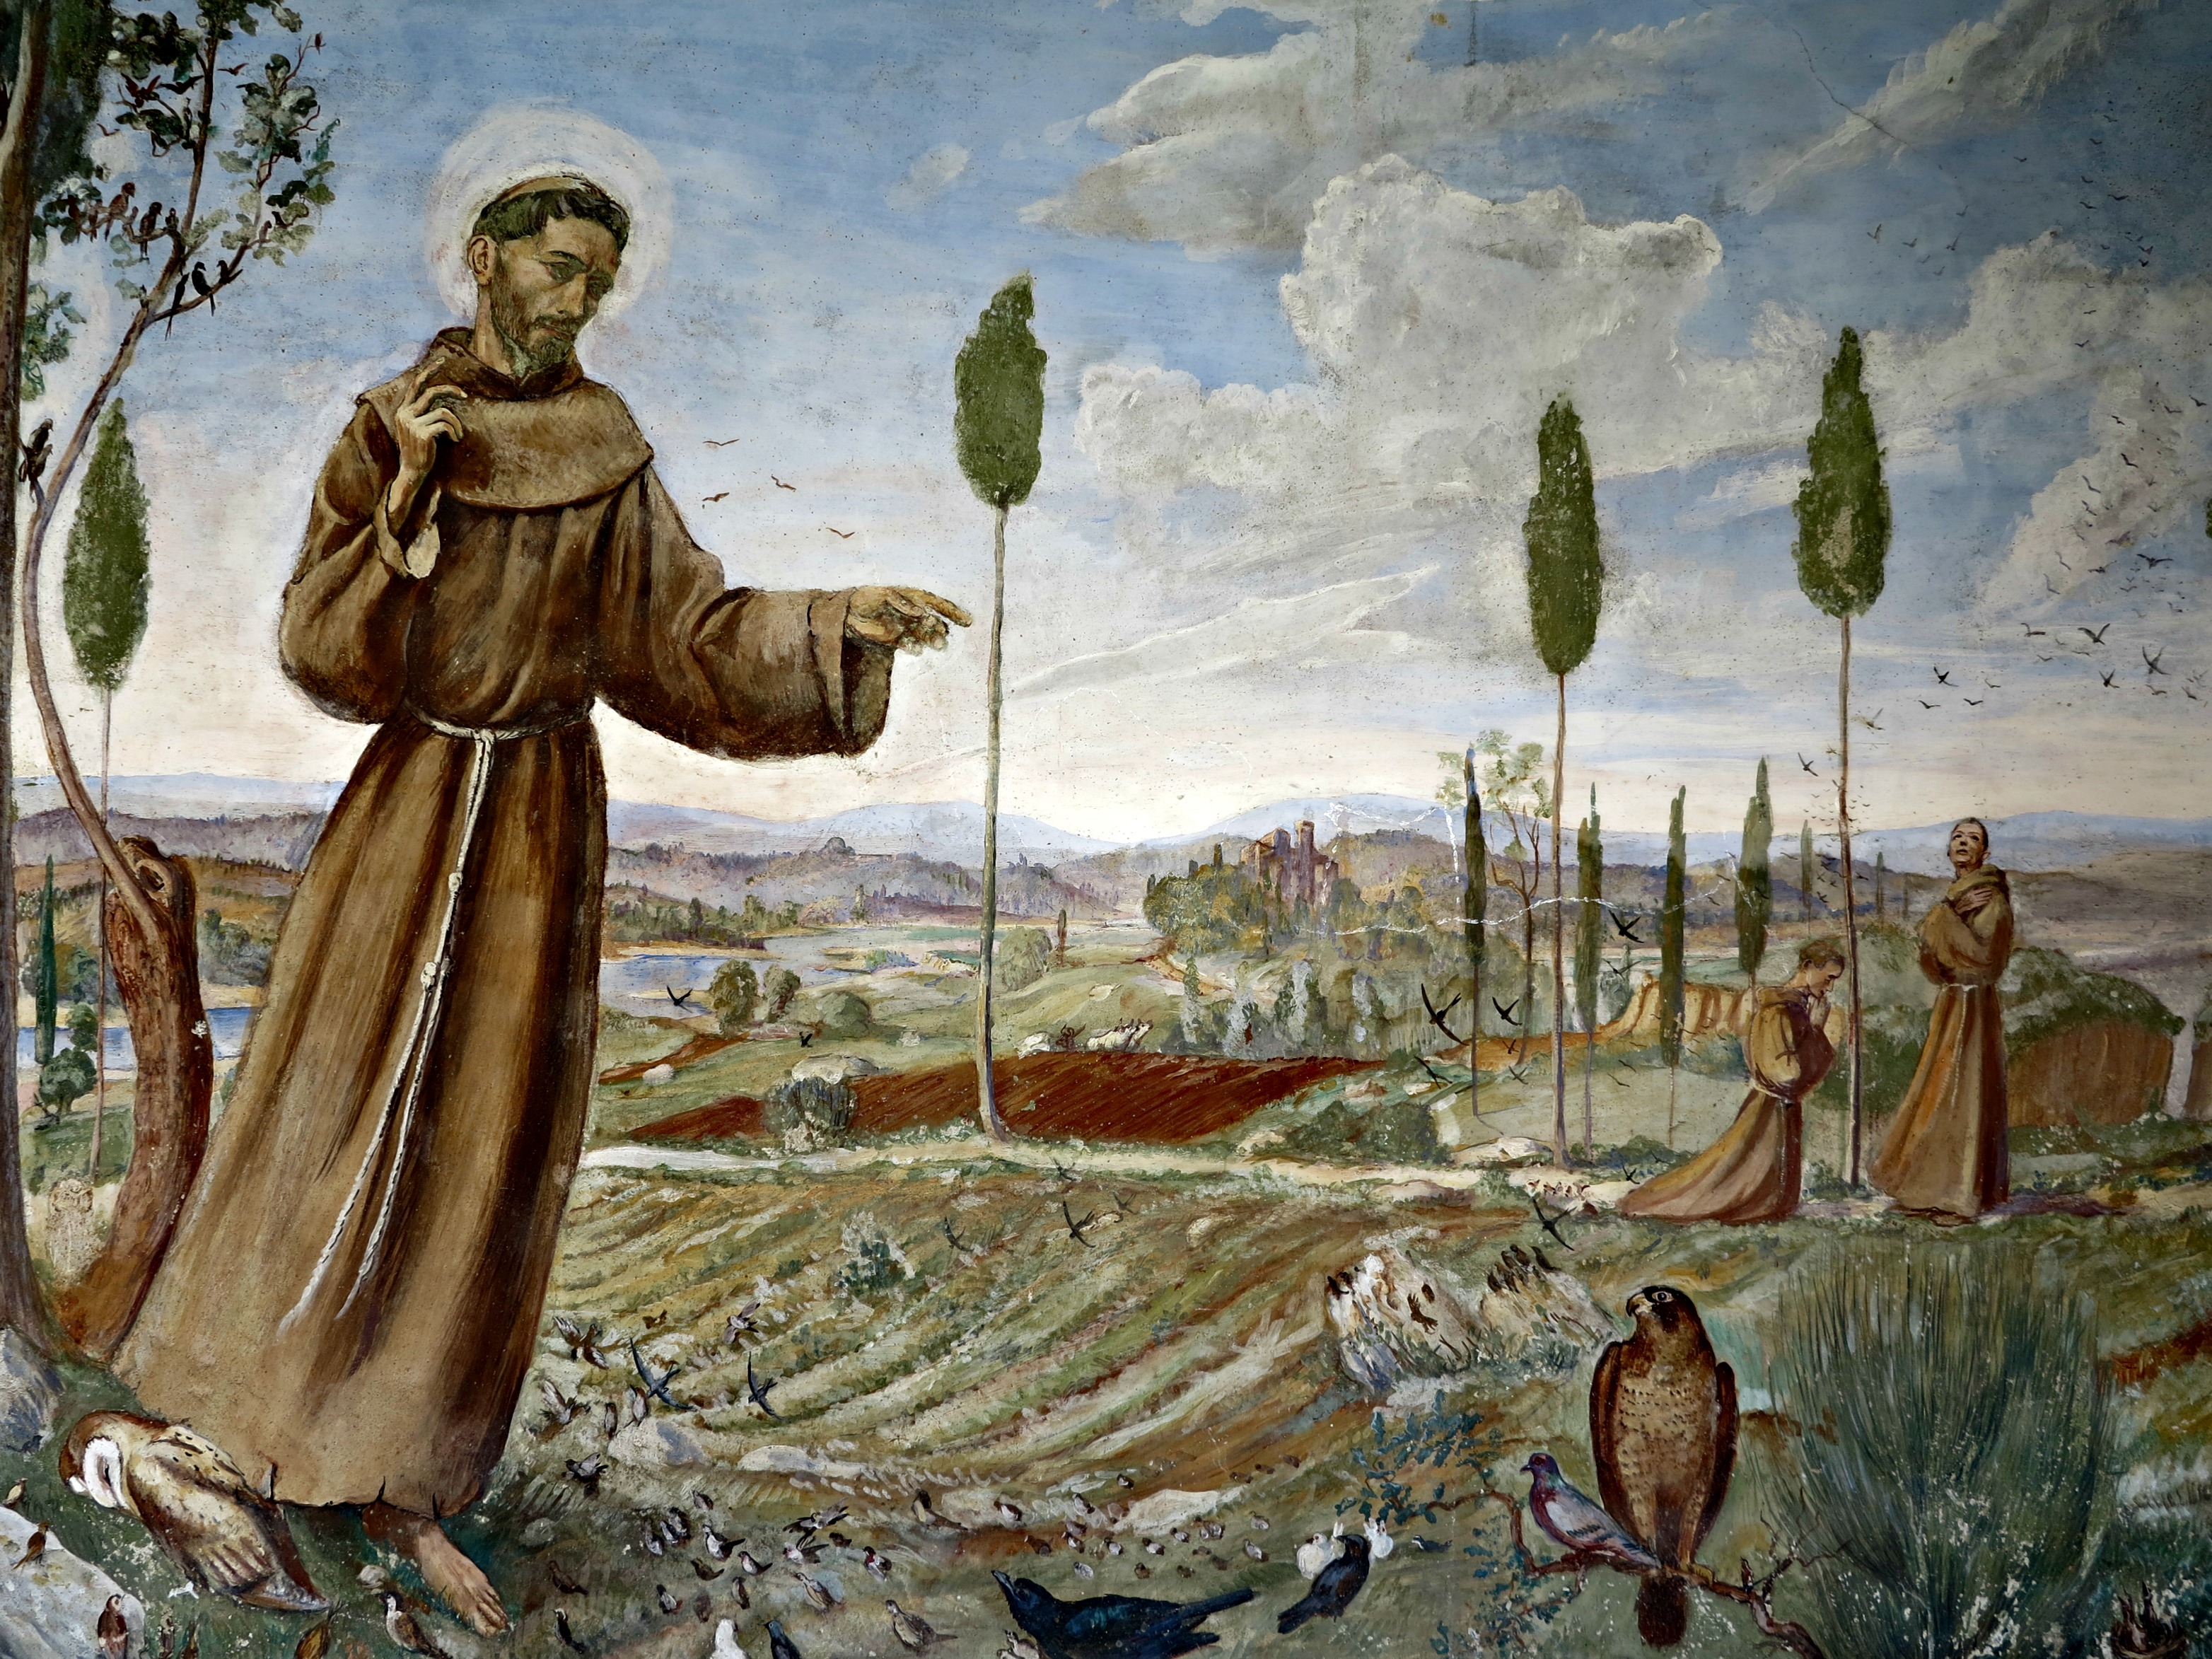 Saint Francis preaches to the birds. | Wikimedia Commons